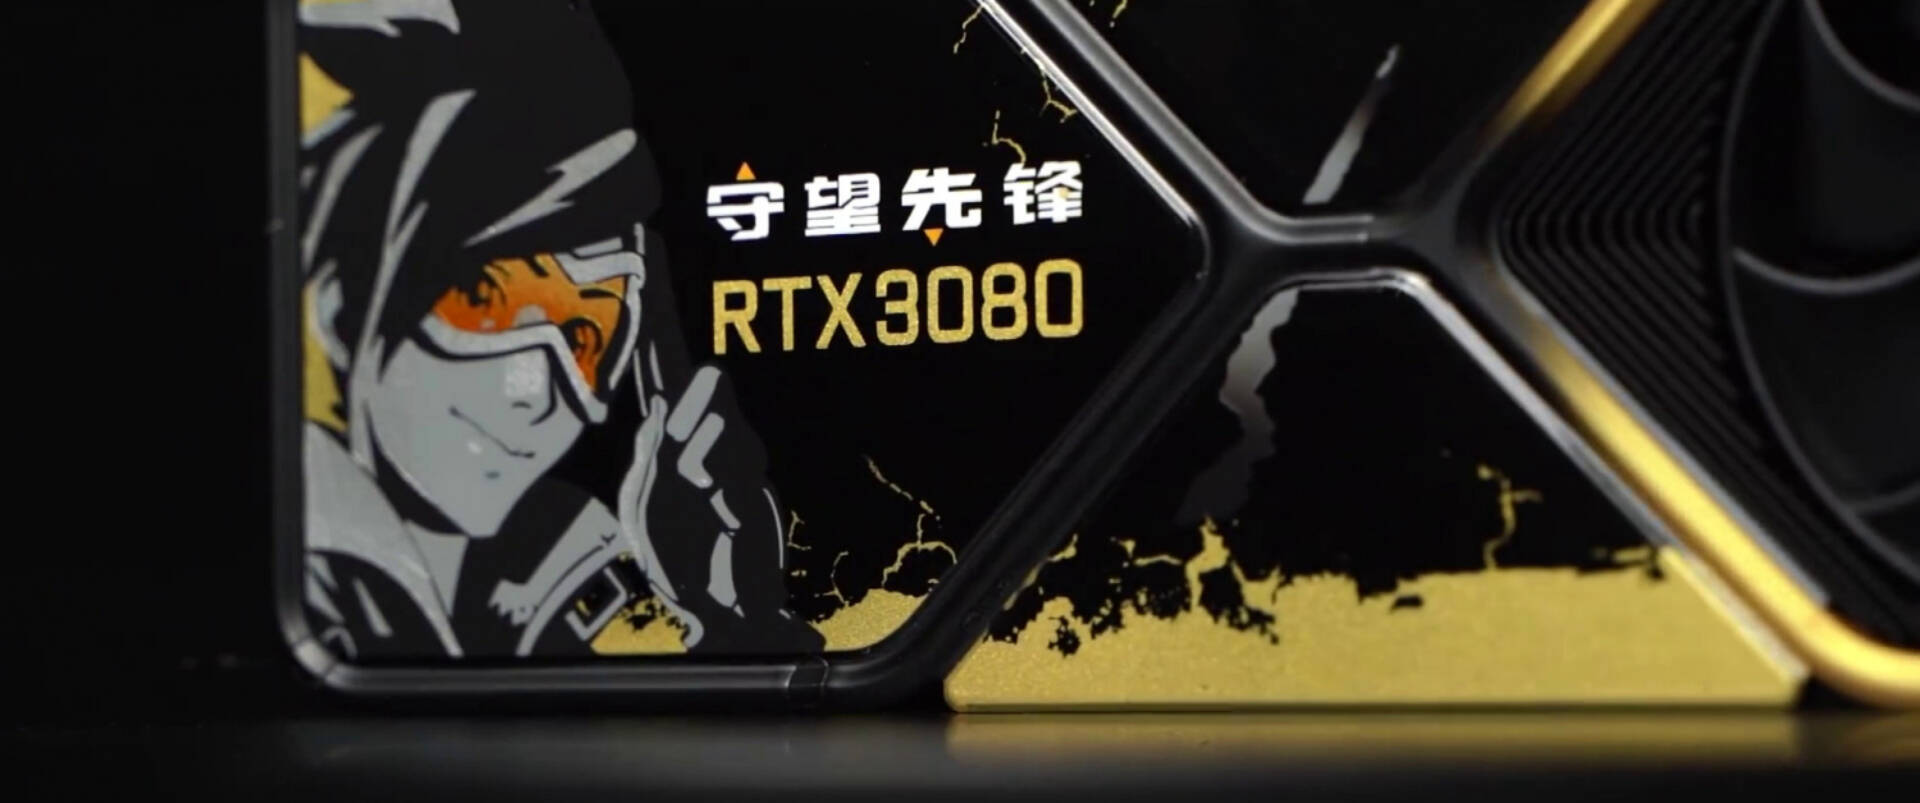 NVIDIA GeForce RTX 3080 Overwatch